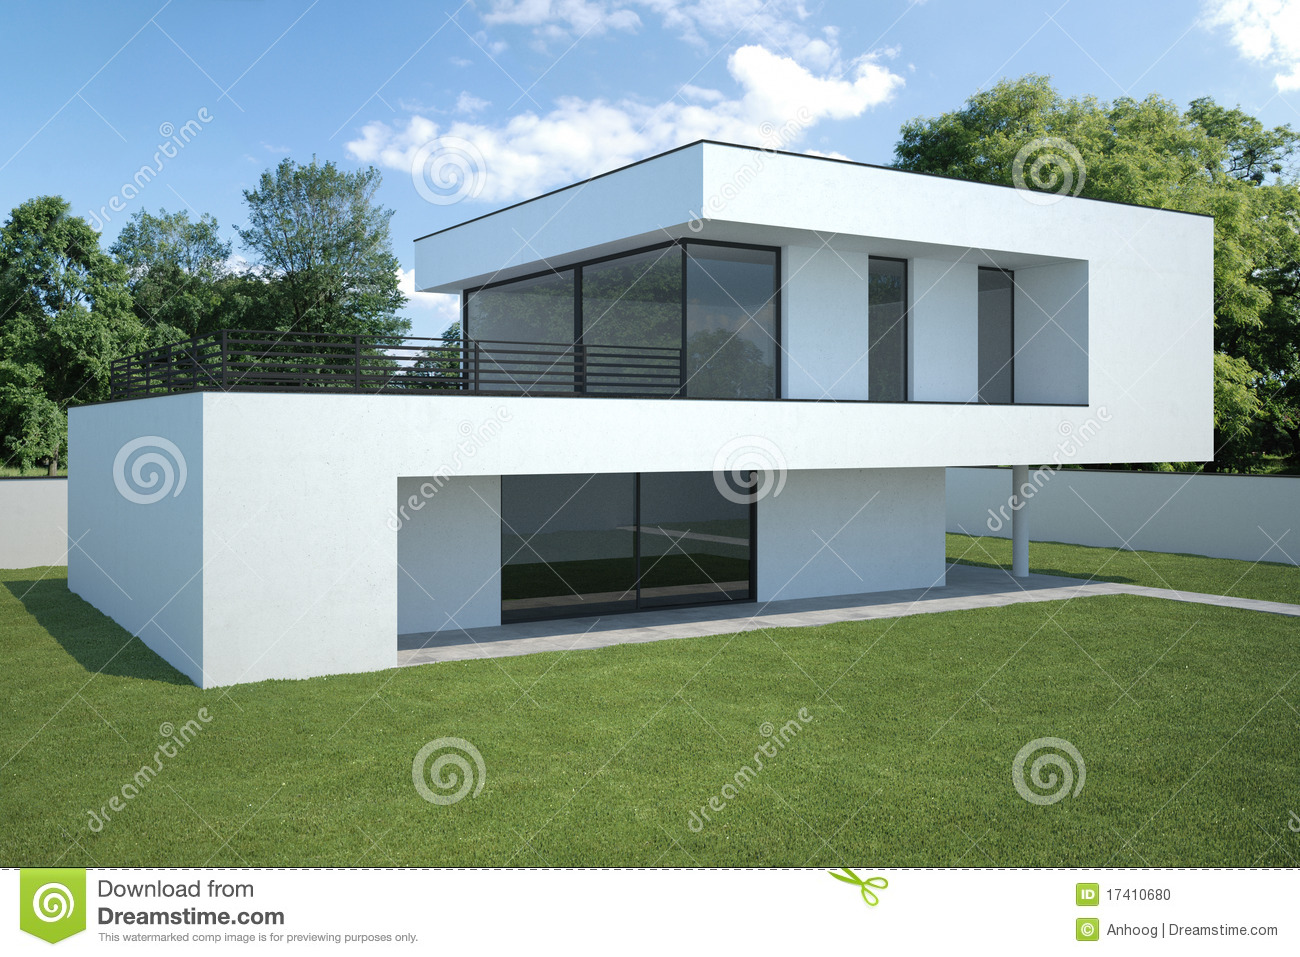 Maison moderne ext rieur avec la pelouse photo stock for Maison contemporaine exterieur